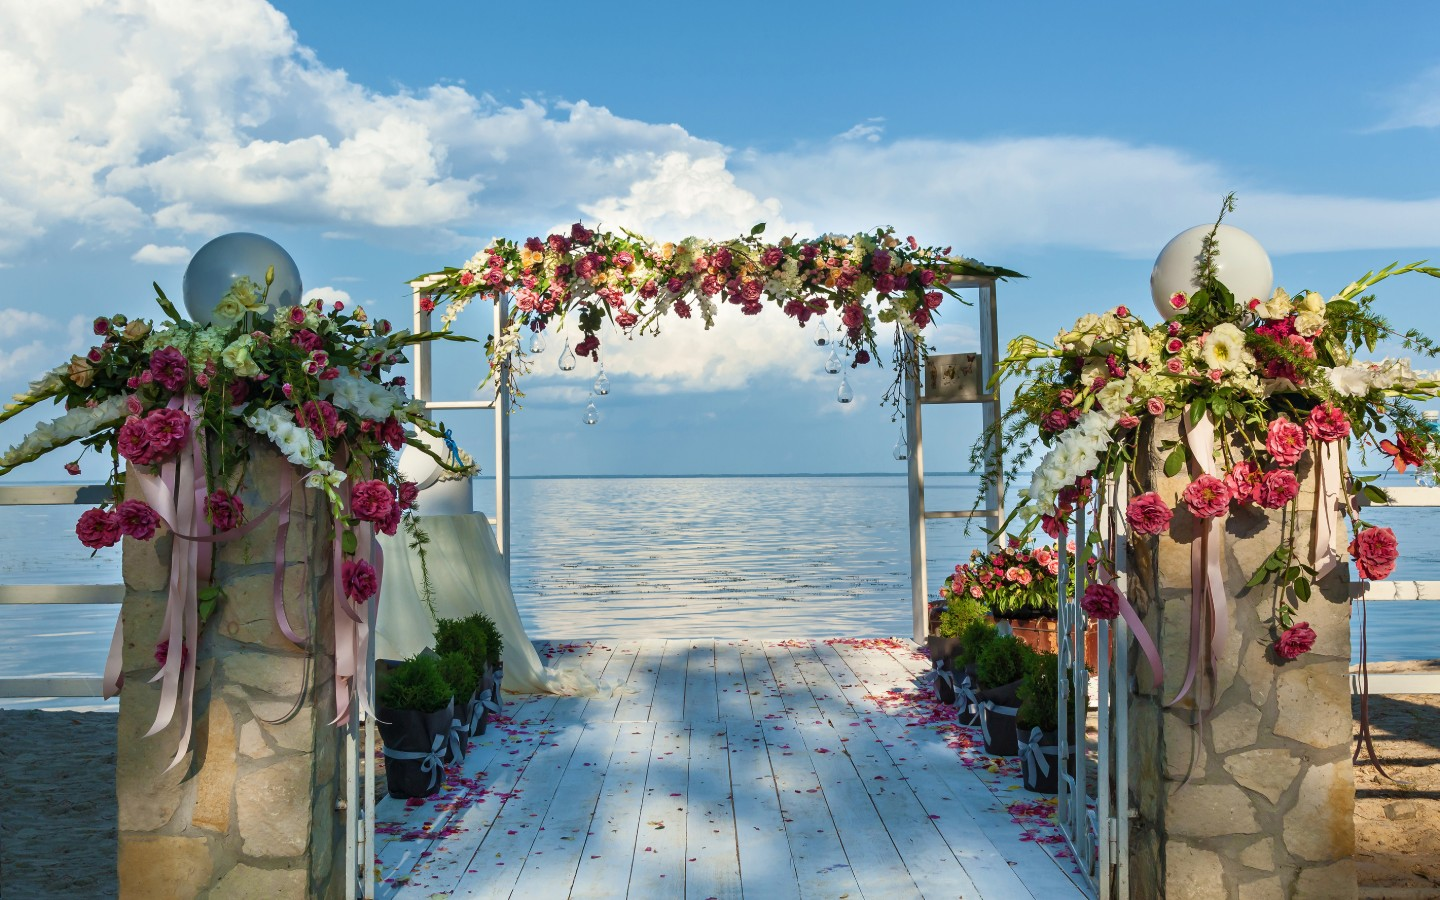 Beautiful wedding venue set up by the water